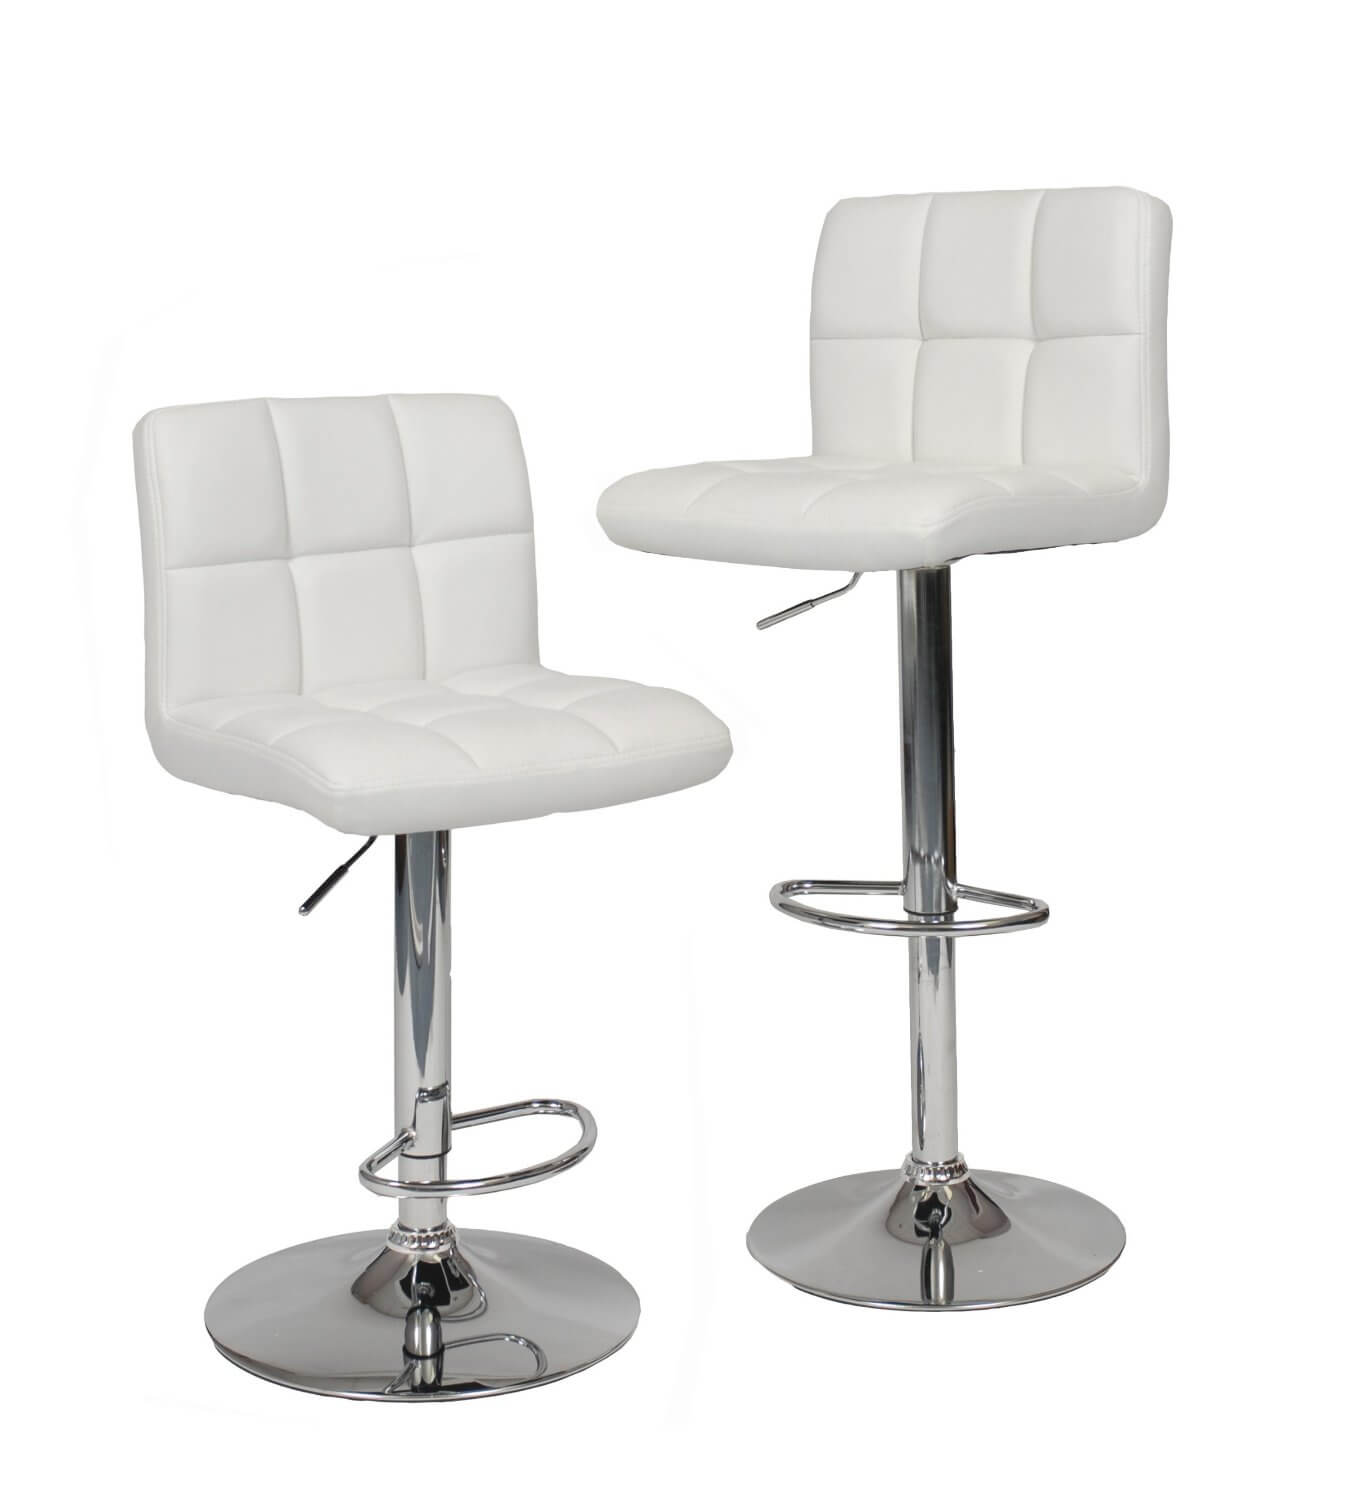 Set of modern chrome frame adjustable and swivel stools.